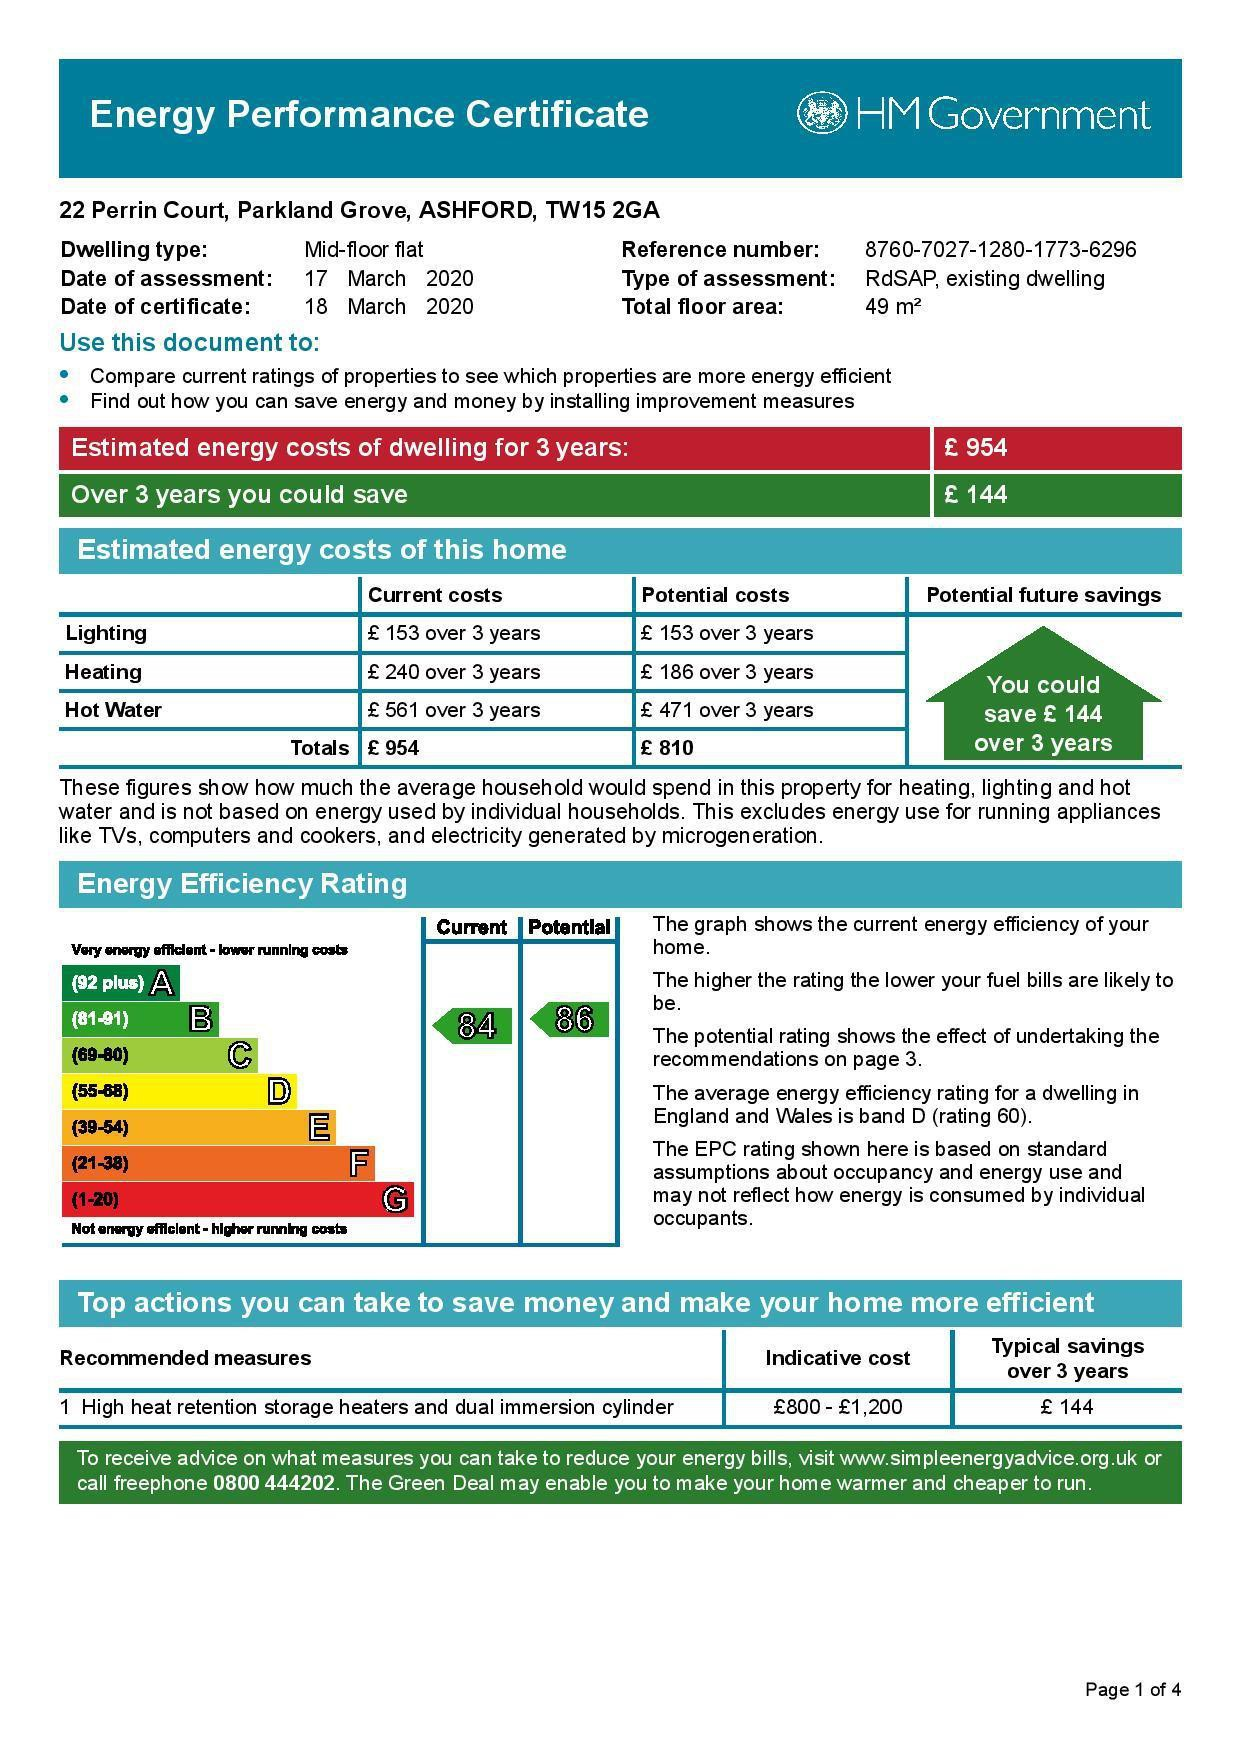 EPC Graph for 22 Perrin Court, Parkland Grove, Ashford, Middlesex TW15 2GA